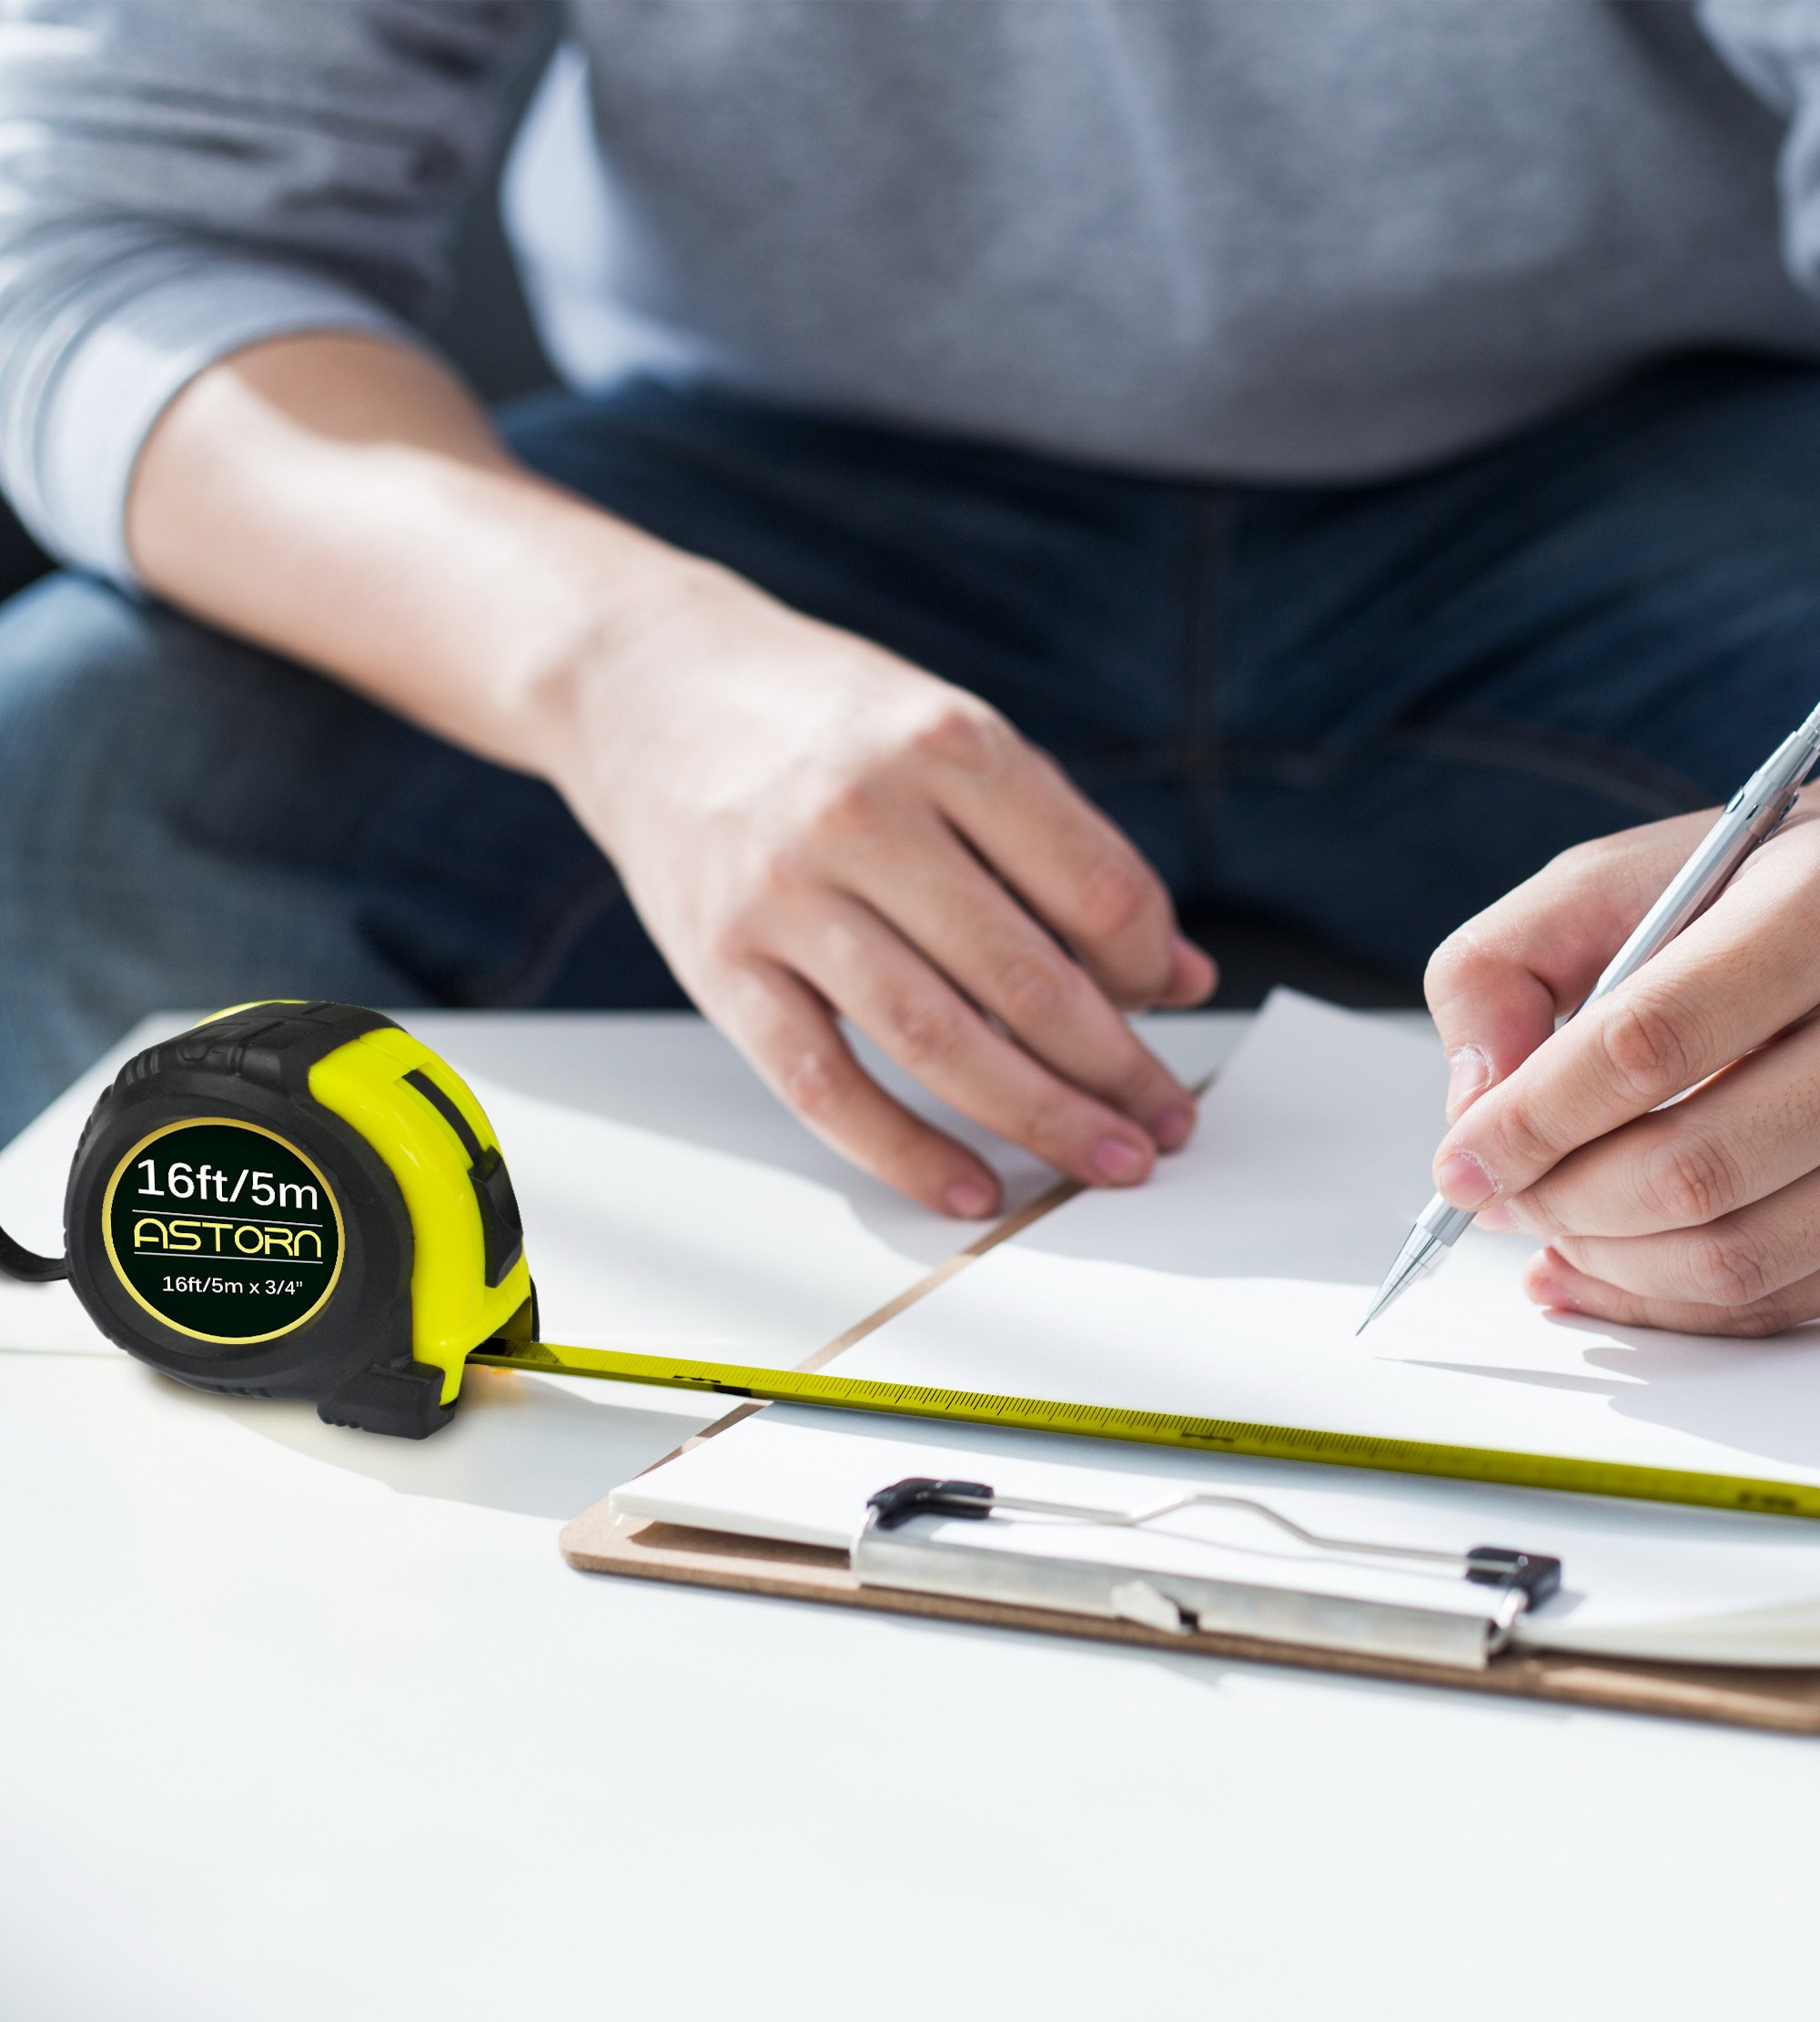 Measuring Tape For Contractors & DIY | Tape Measurer (Cinta Metrica) | Metric & Inches Measuring Tape for Construction | Heavy Duty Tape Measure with Smooth Sliding Nylon Coated Ruler by Astorn by Astorn (Image #7)